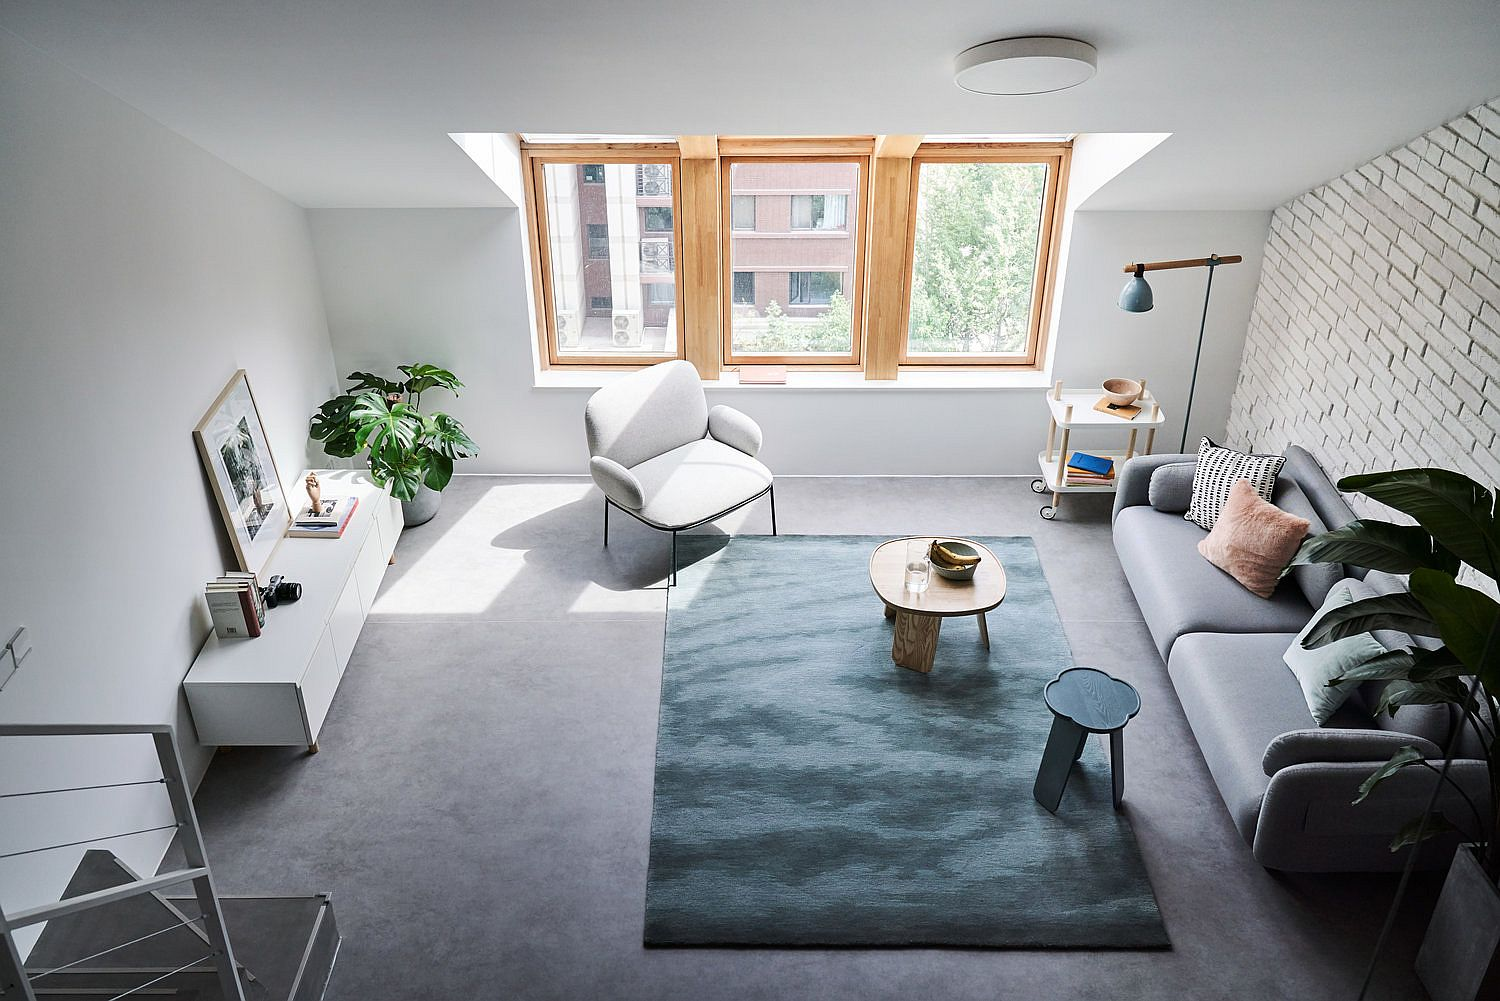 View-of-the-light-filled-living-area-from-the-mezzanine-floor